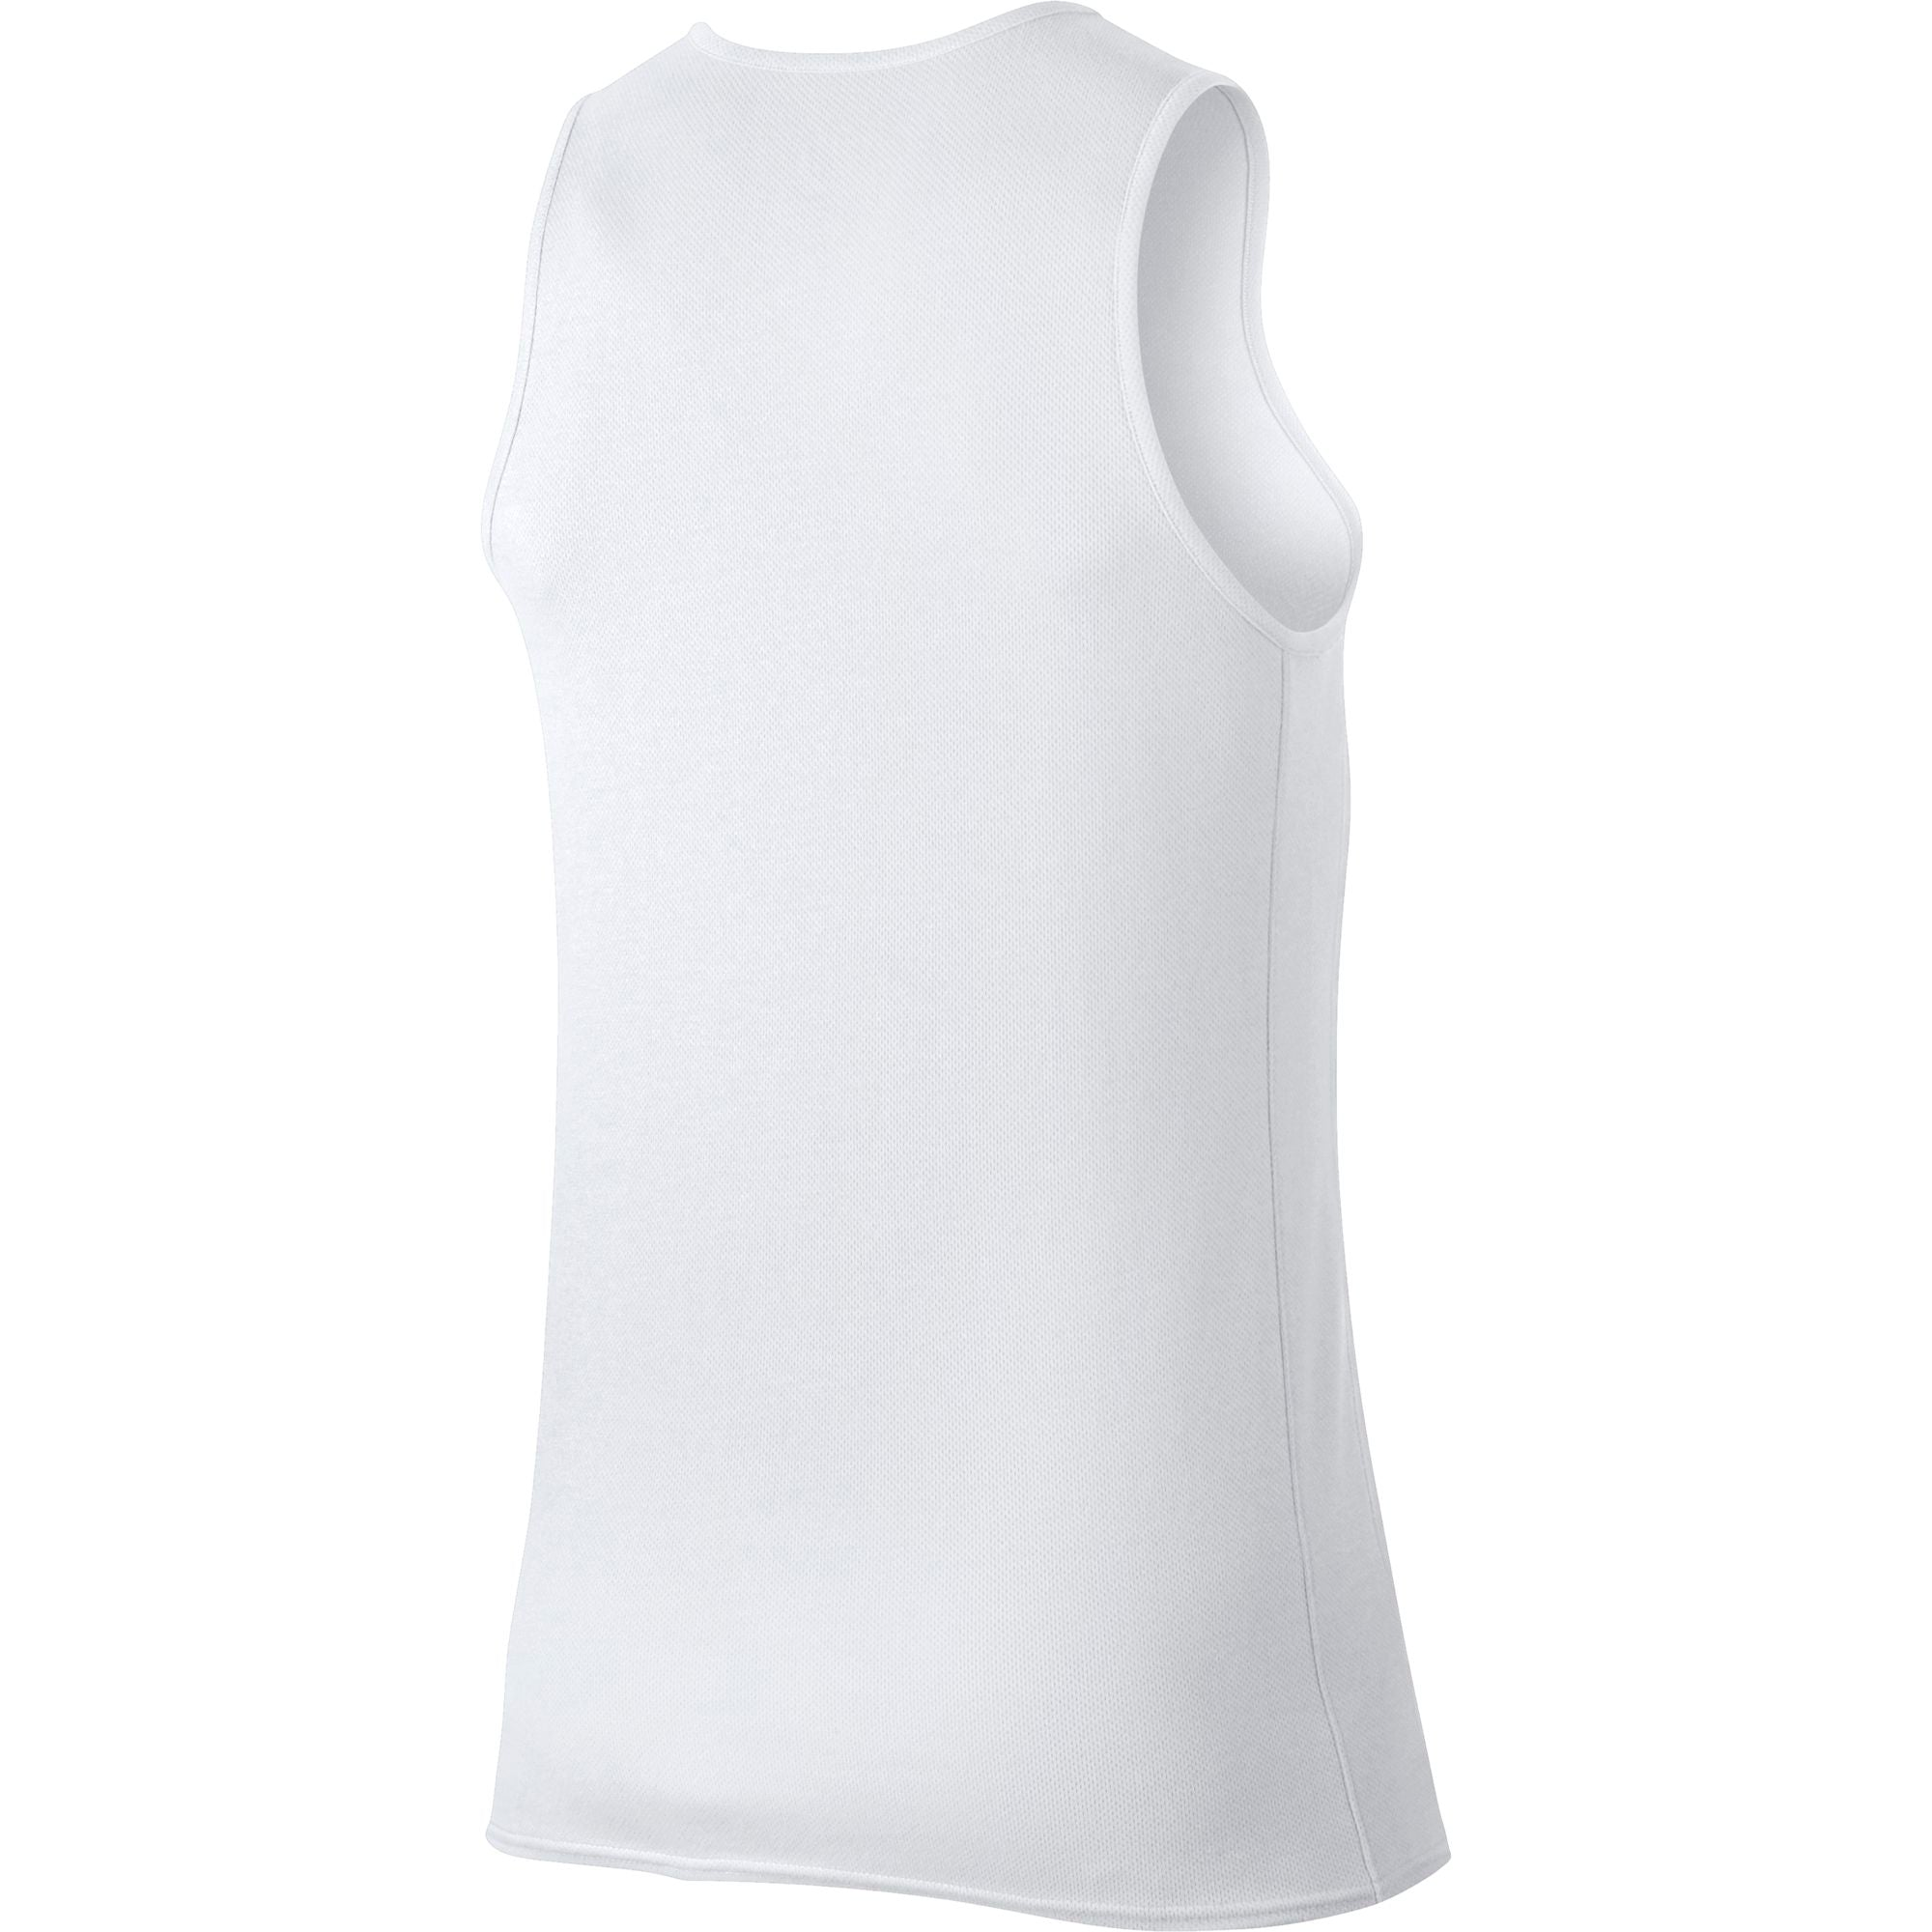 Nike Jordan Basketball Rise Tank - White/Black